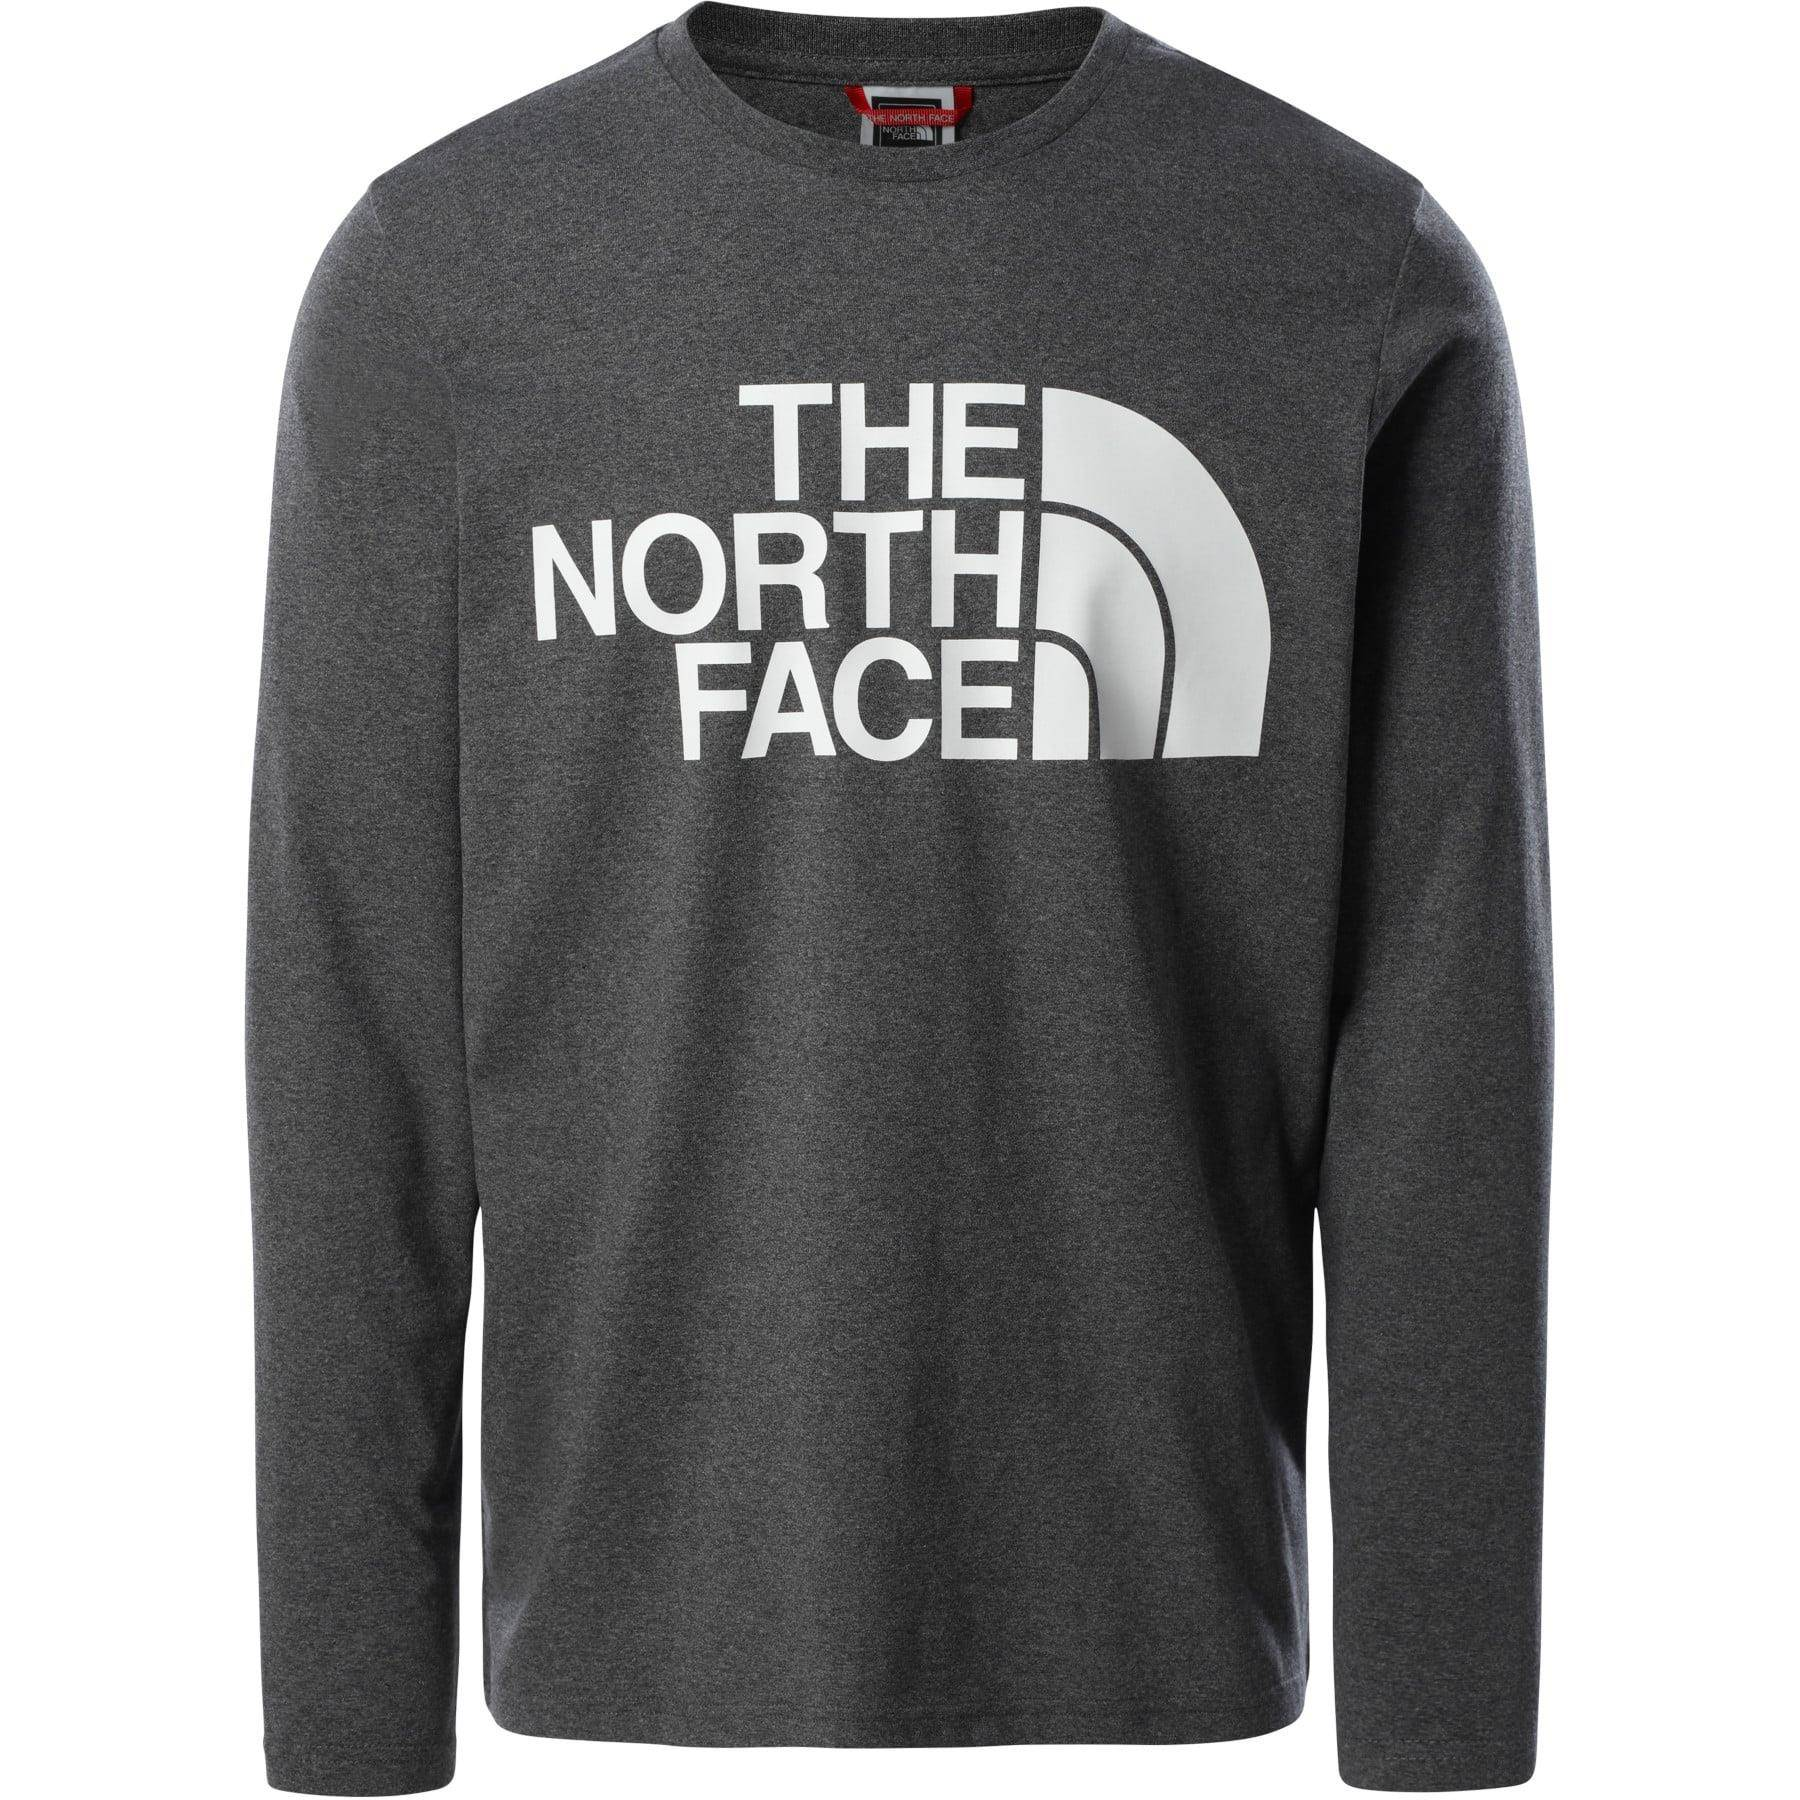 Bluza The North Face Standard T95585DYY